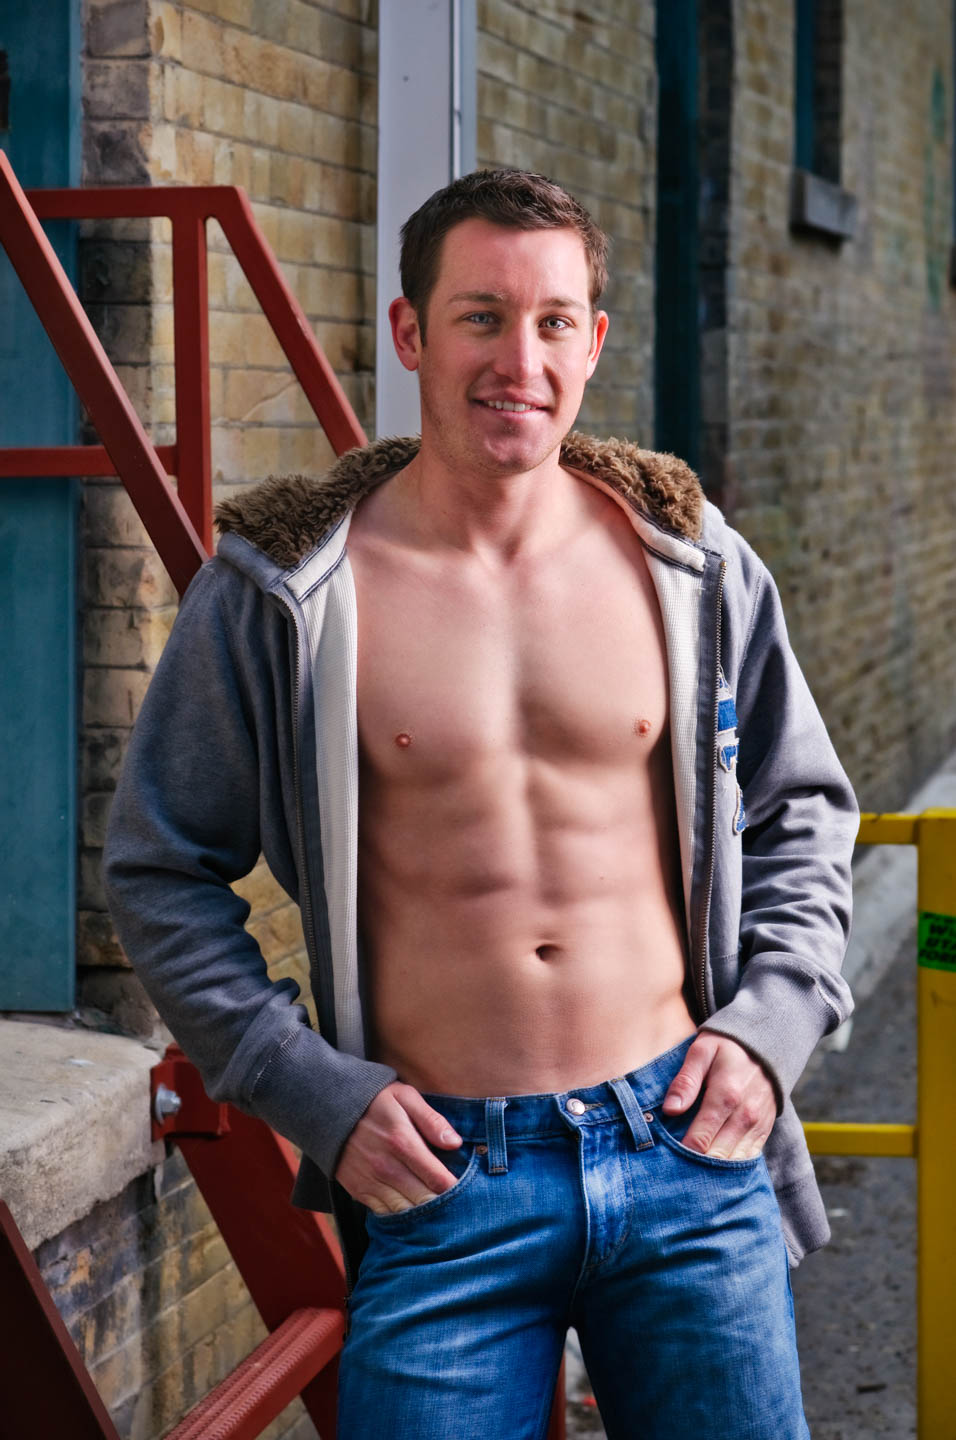 Shirtless with a hoodie